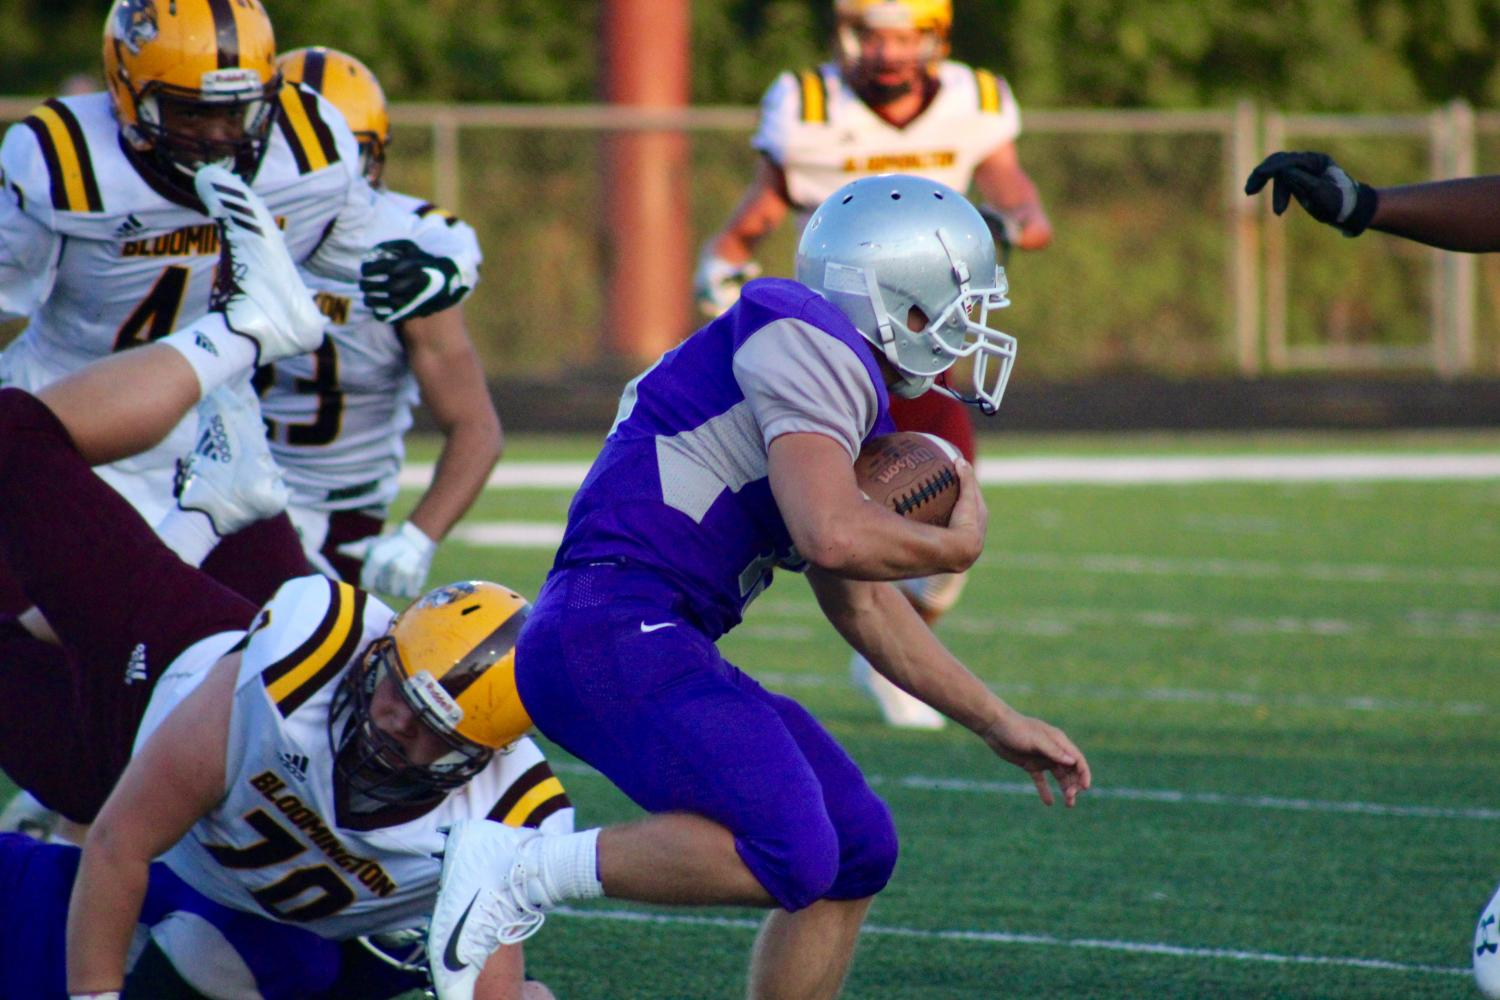 Panther football conquers the Cougars (gallery)